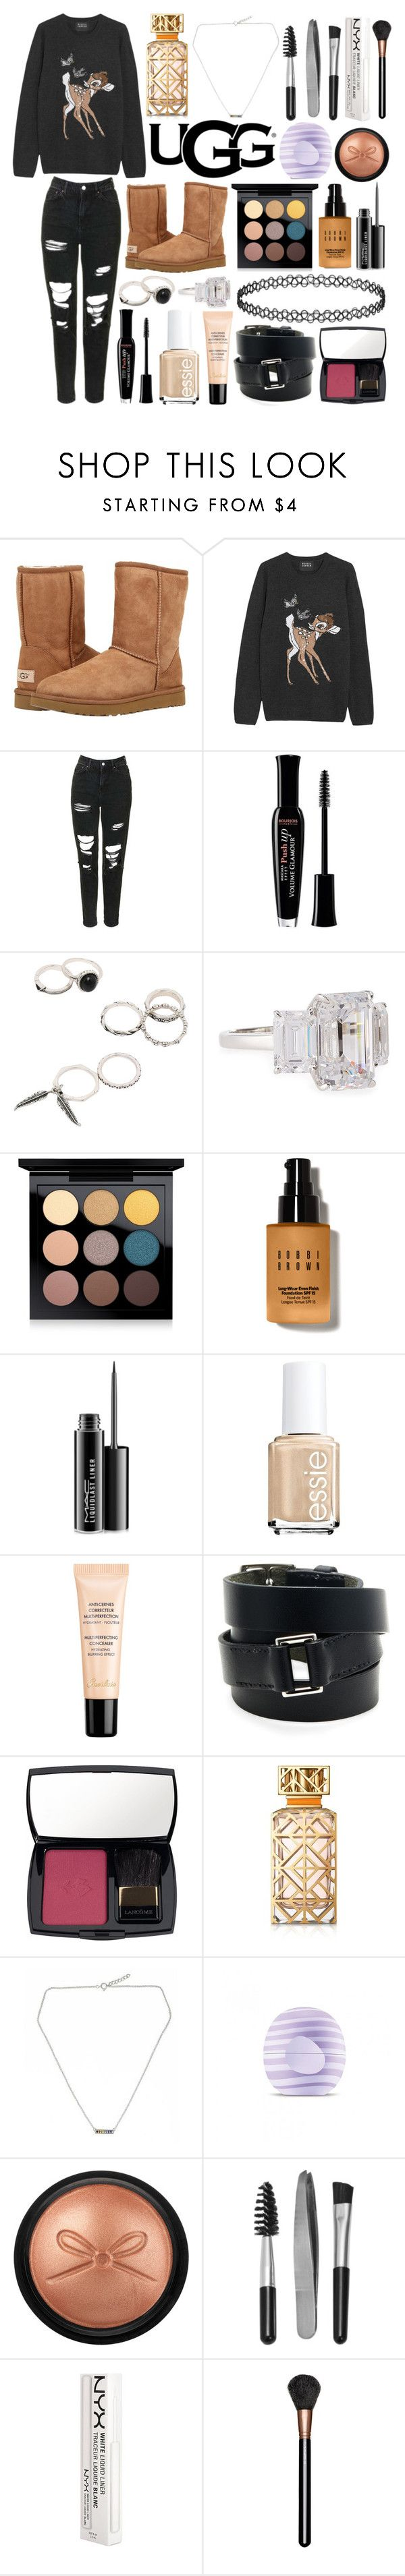 """""""The Icon Perfected: UGG Classic II Contest Entry"""" by eve22s ❤ liked on Polyvore featuring UGG Australia, Markus Lupfer, Topshop, Bourjois, Fantasia by DeSerio, MAC Cosmetics, Bobbi Brown Cosmetics, Essie, Guerlain and Hermès"""